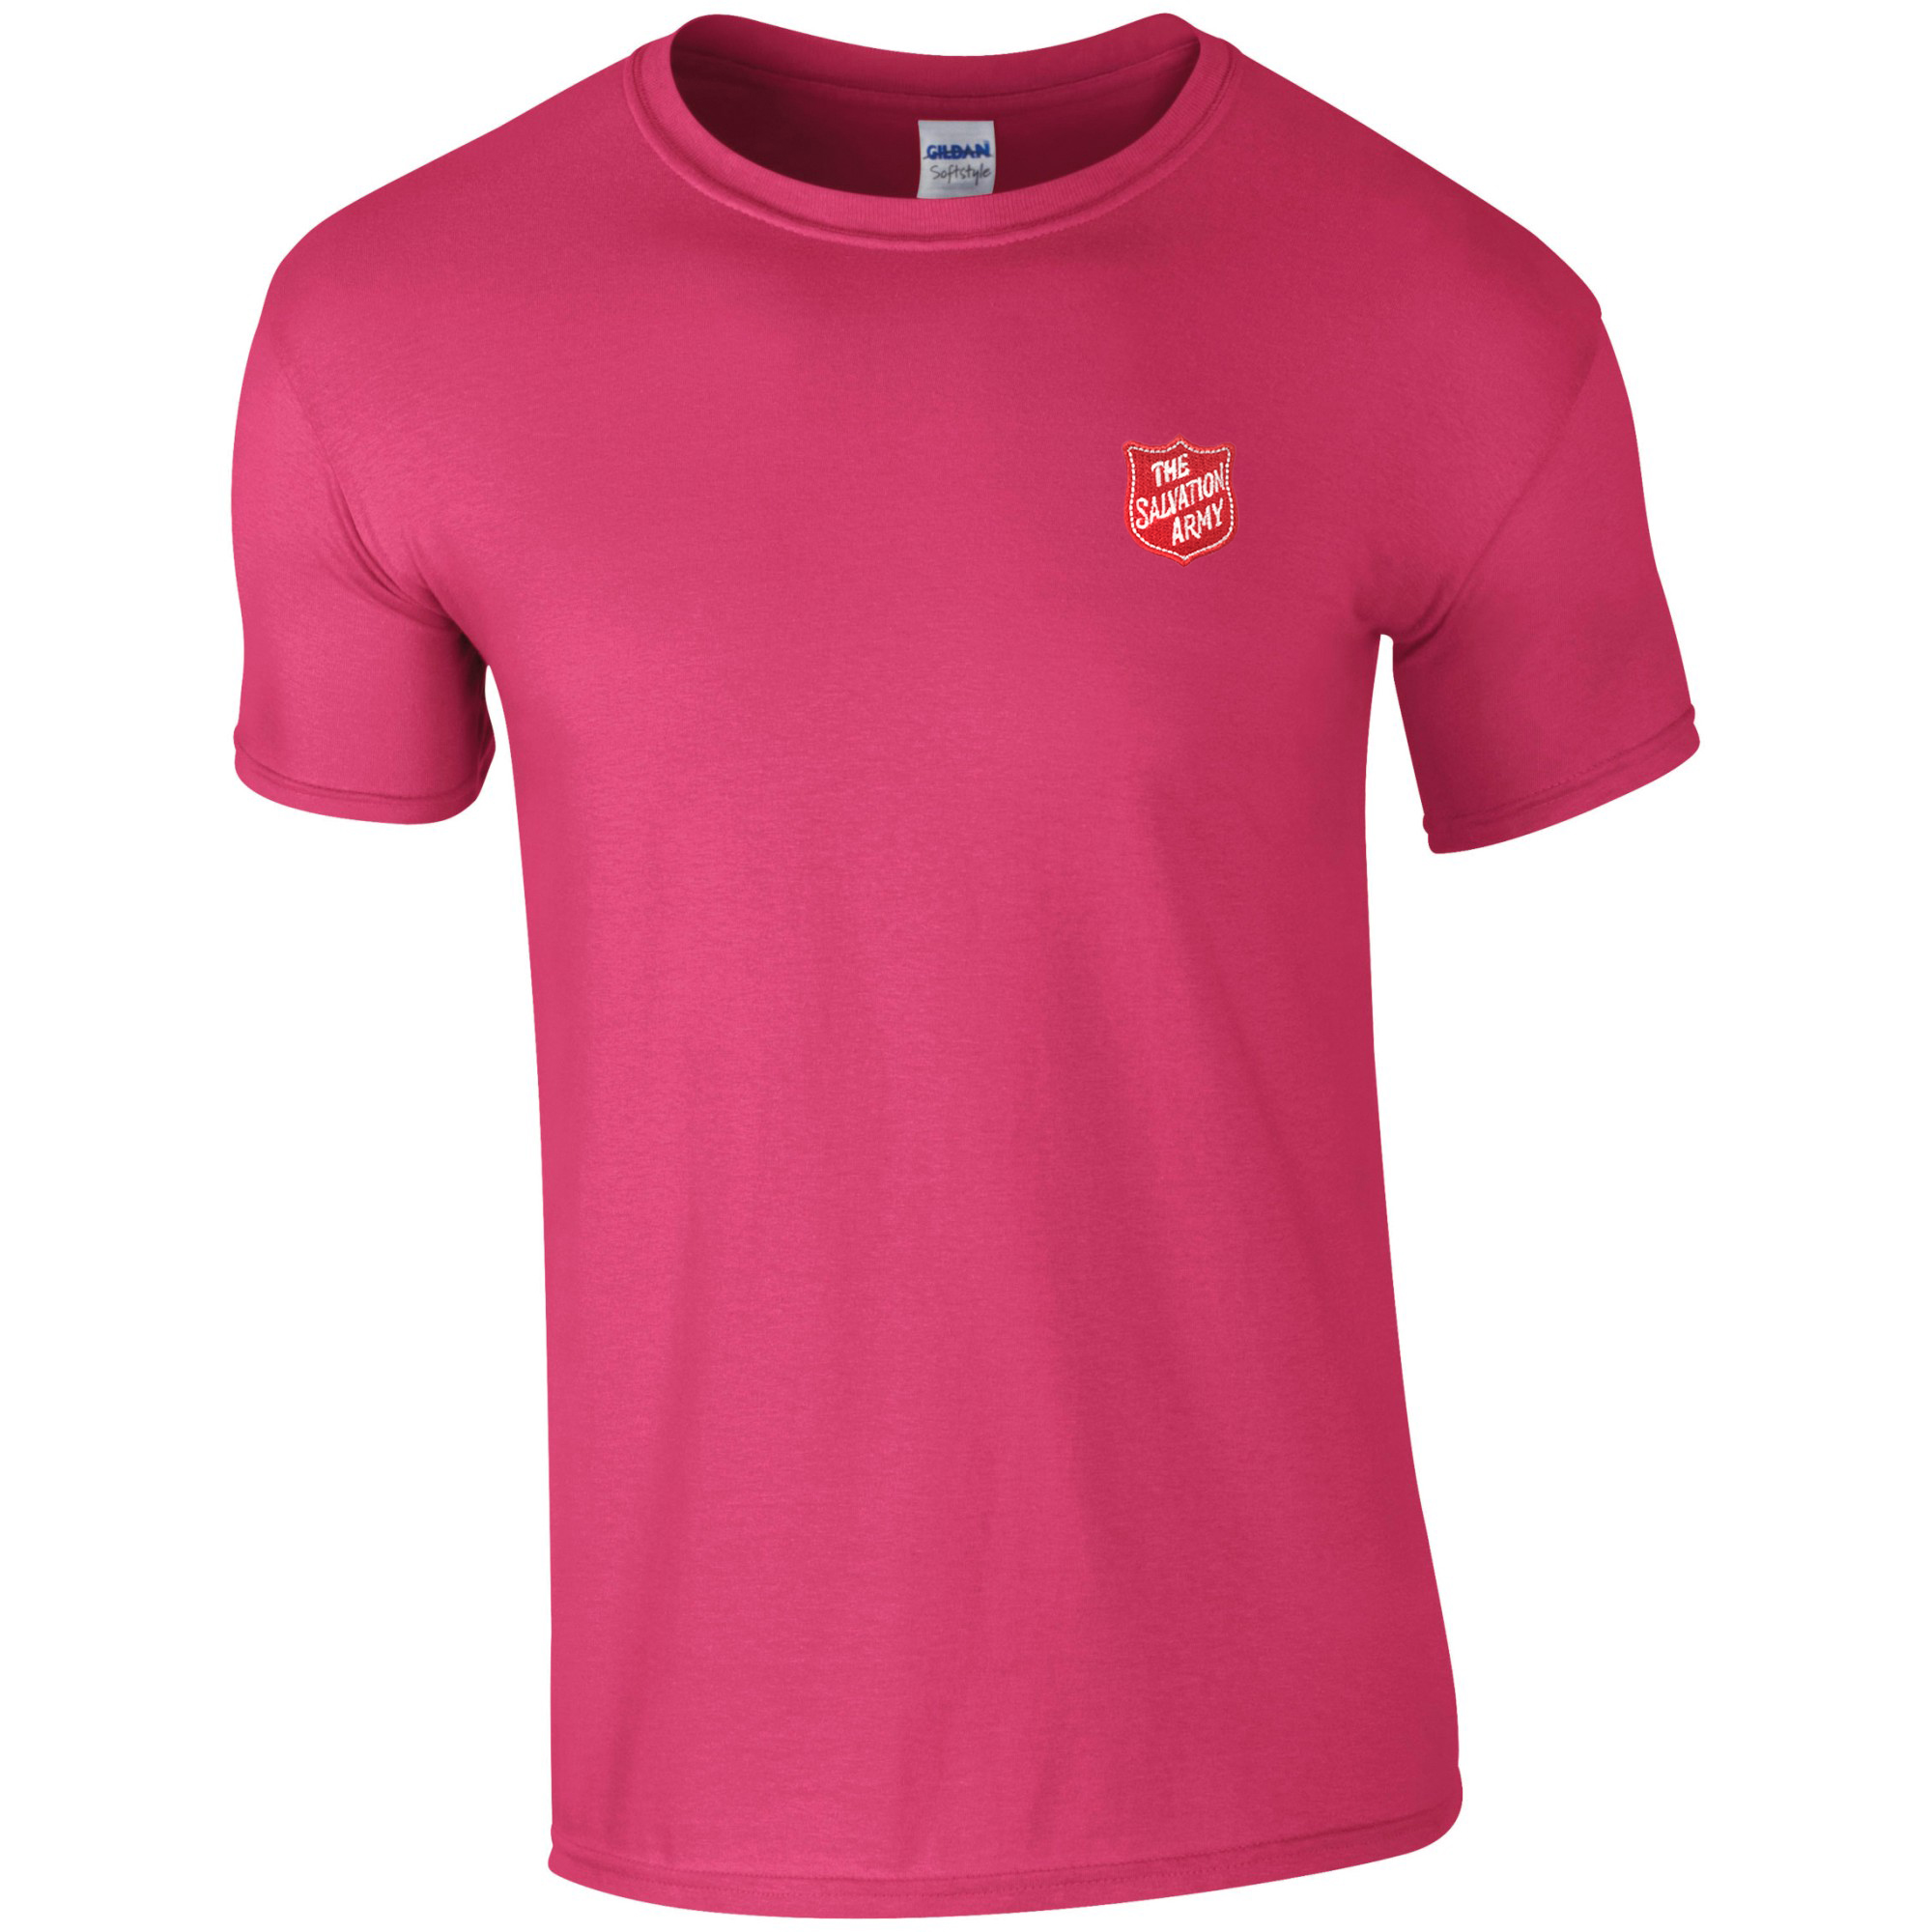 Essentials T Shirt - Pink with Shield